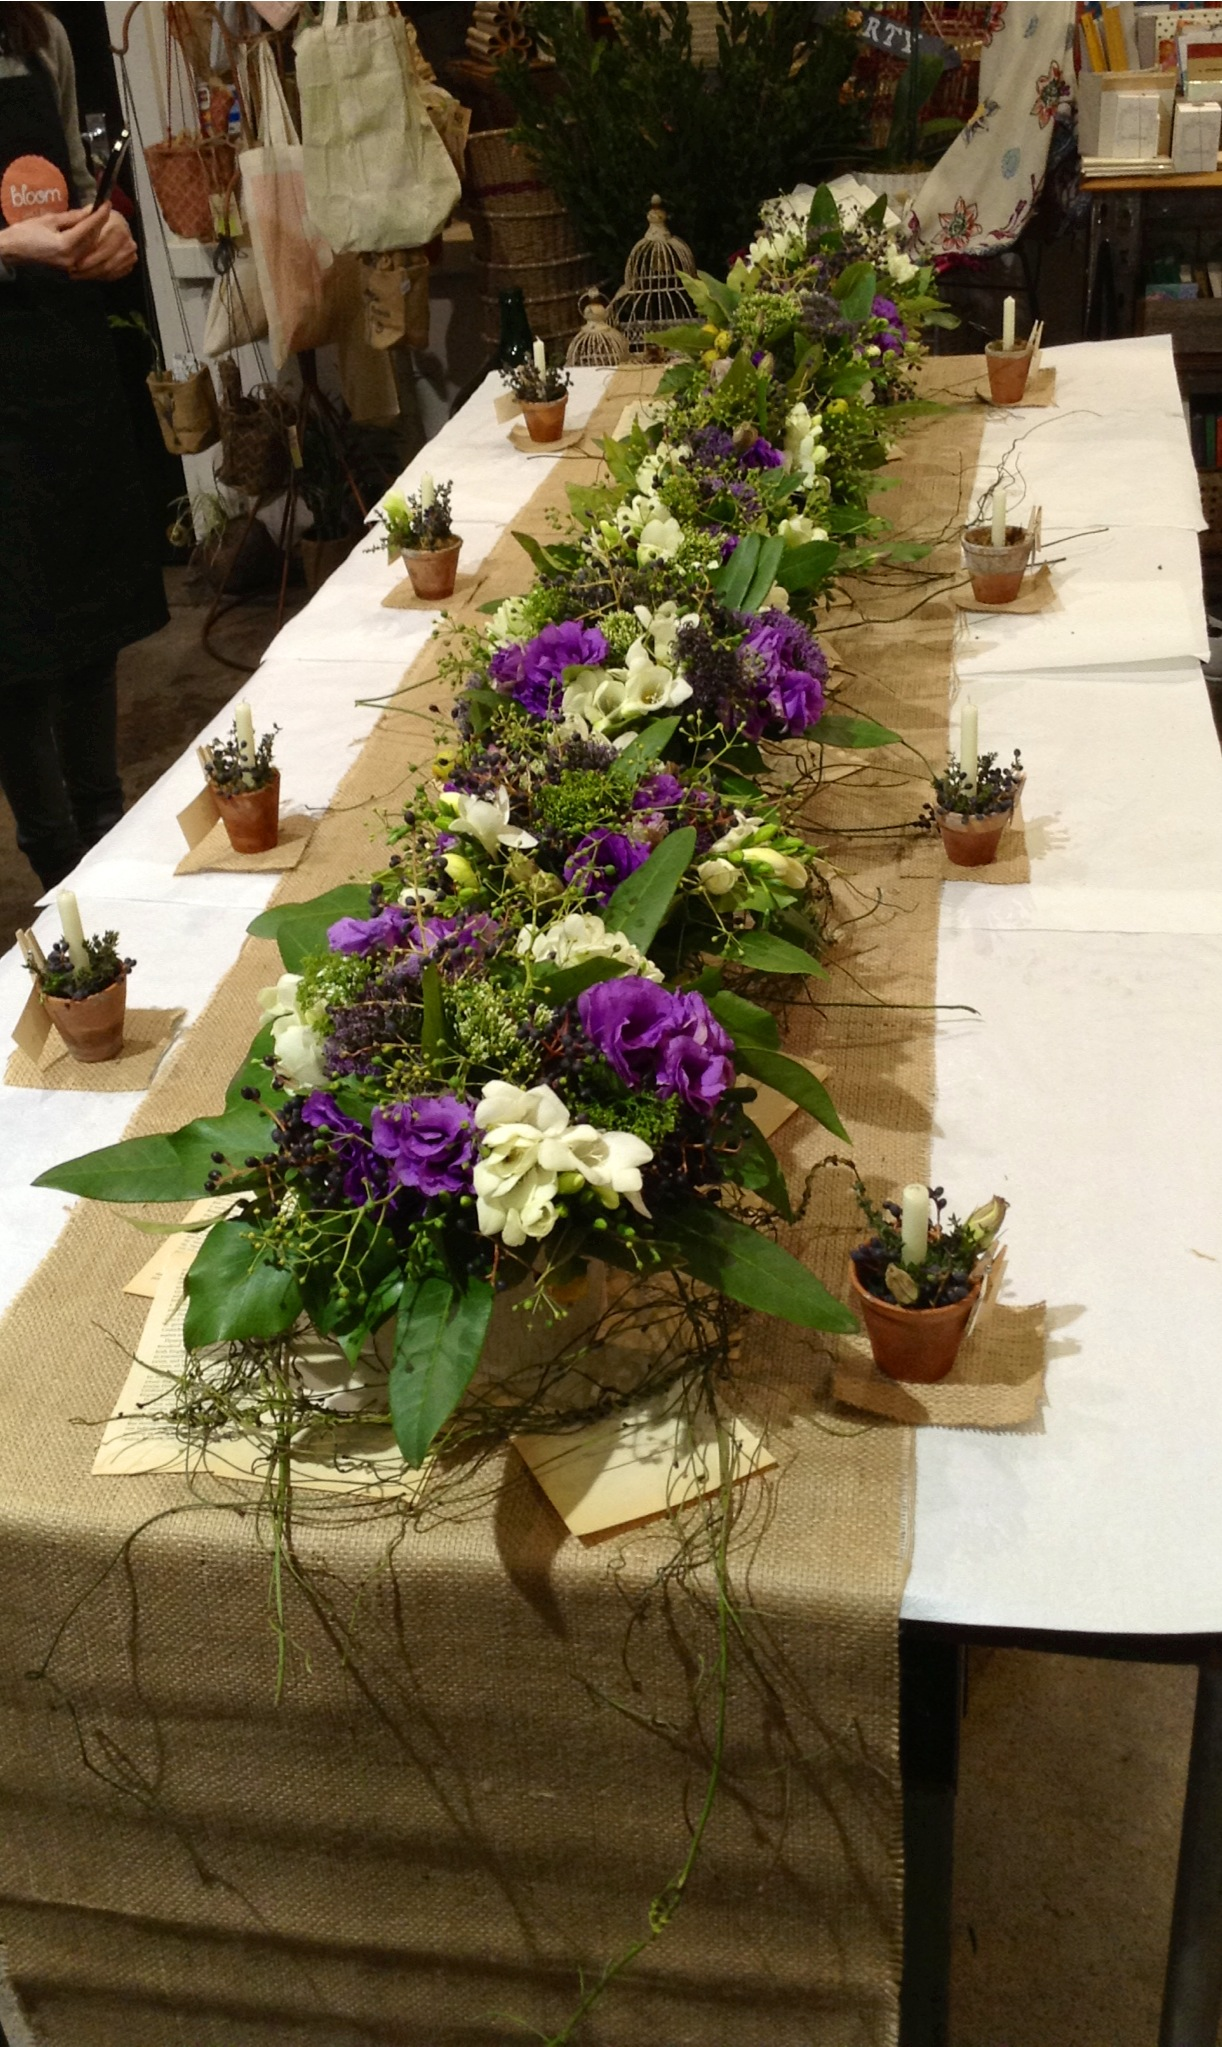 bouquets and table centre pieces filled our geelong courses and workshops last week with fun and